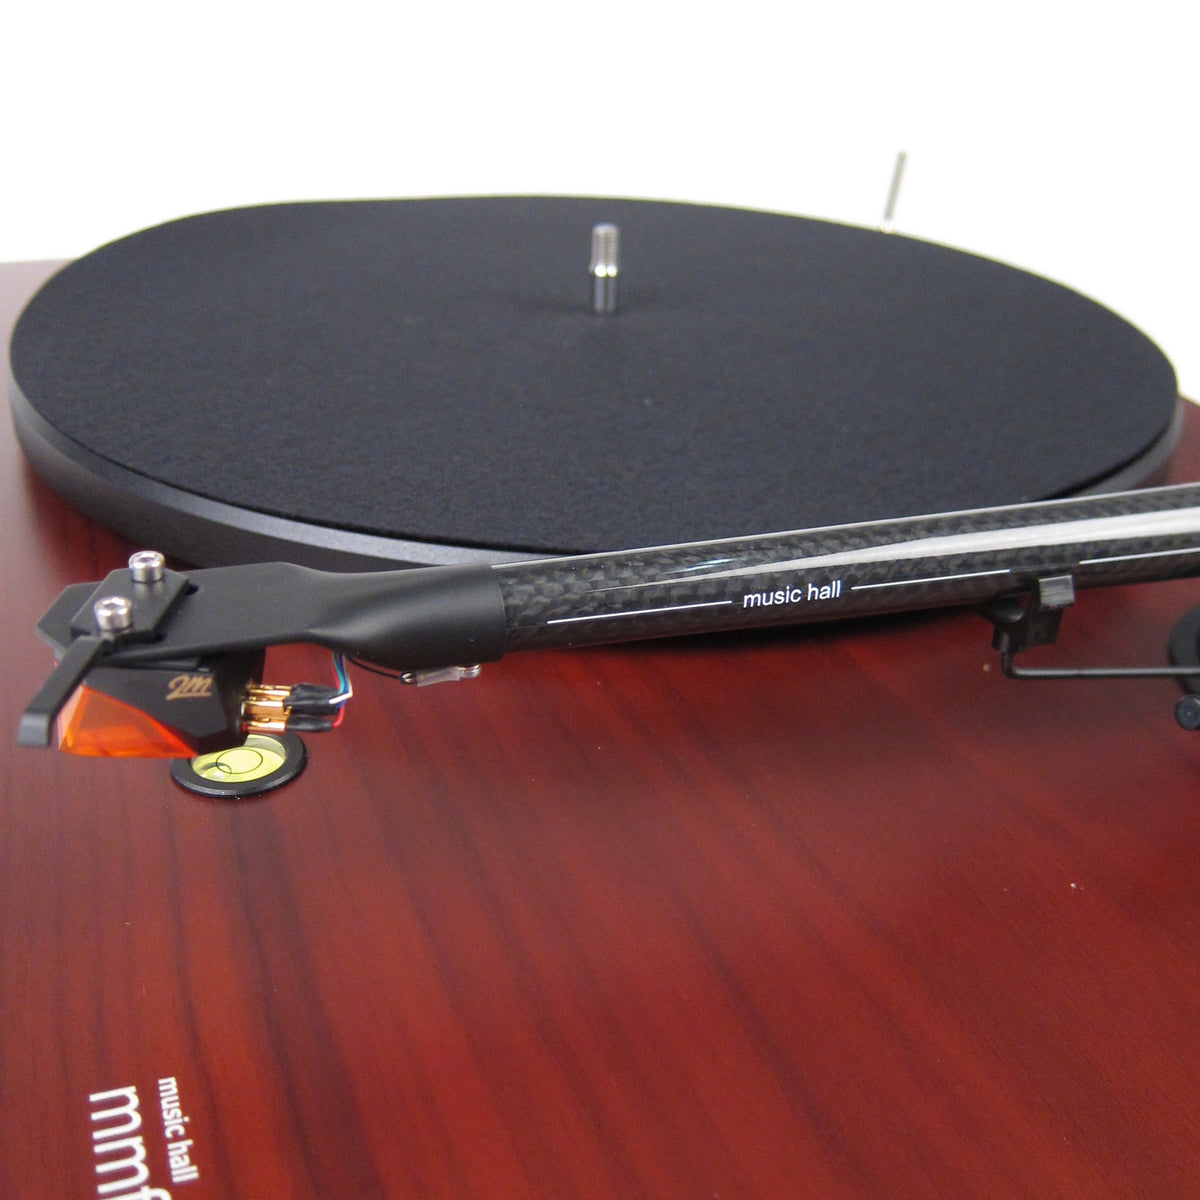 Music Hall: MMF 5.3SE Turntable - Rosenut (Carbon Fiber Tonearm, 2M Bronze)